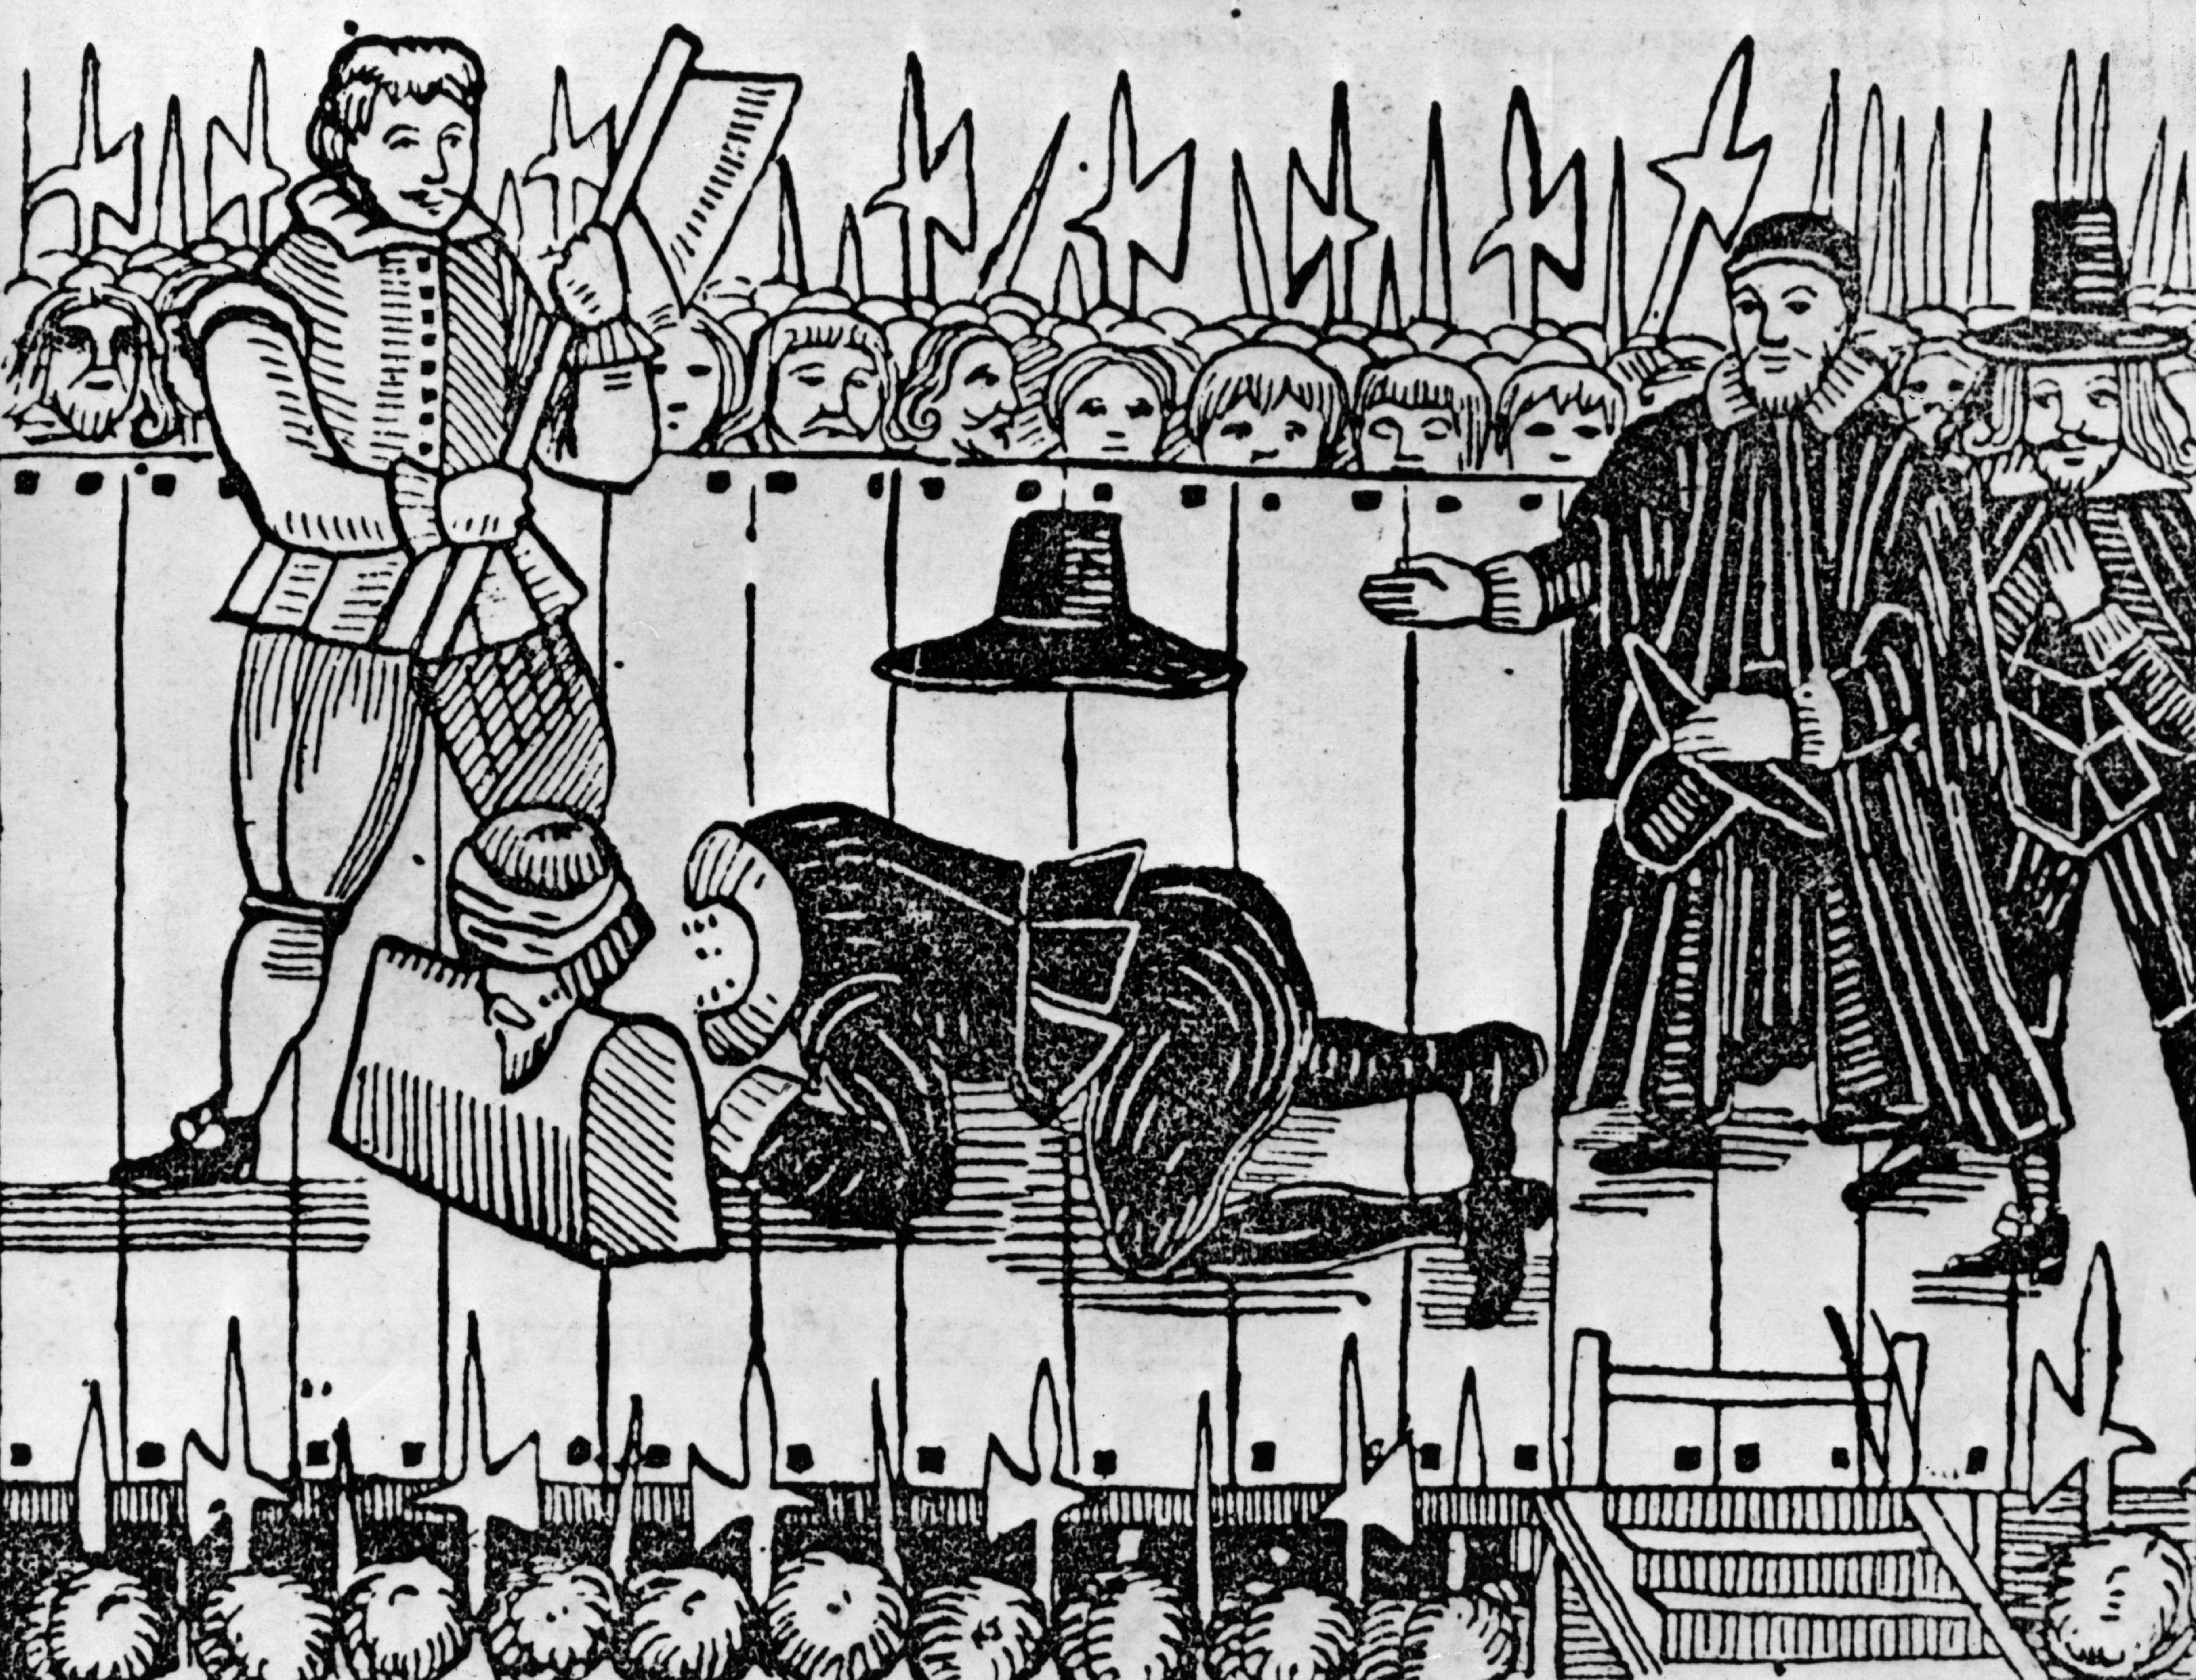 """""""For those of noble birth who were condemned to die, execution by beheading (which was considered the least brutal method of execution) was used until the 18th century,"""" says Seal. (Hulton Archive/Getty Images)"""